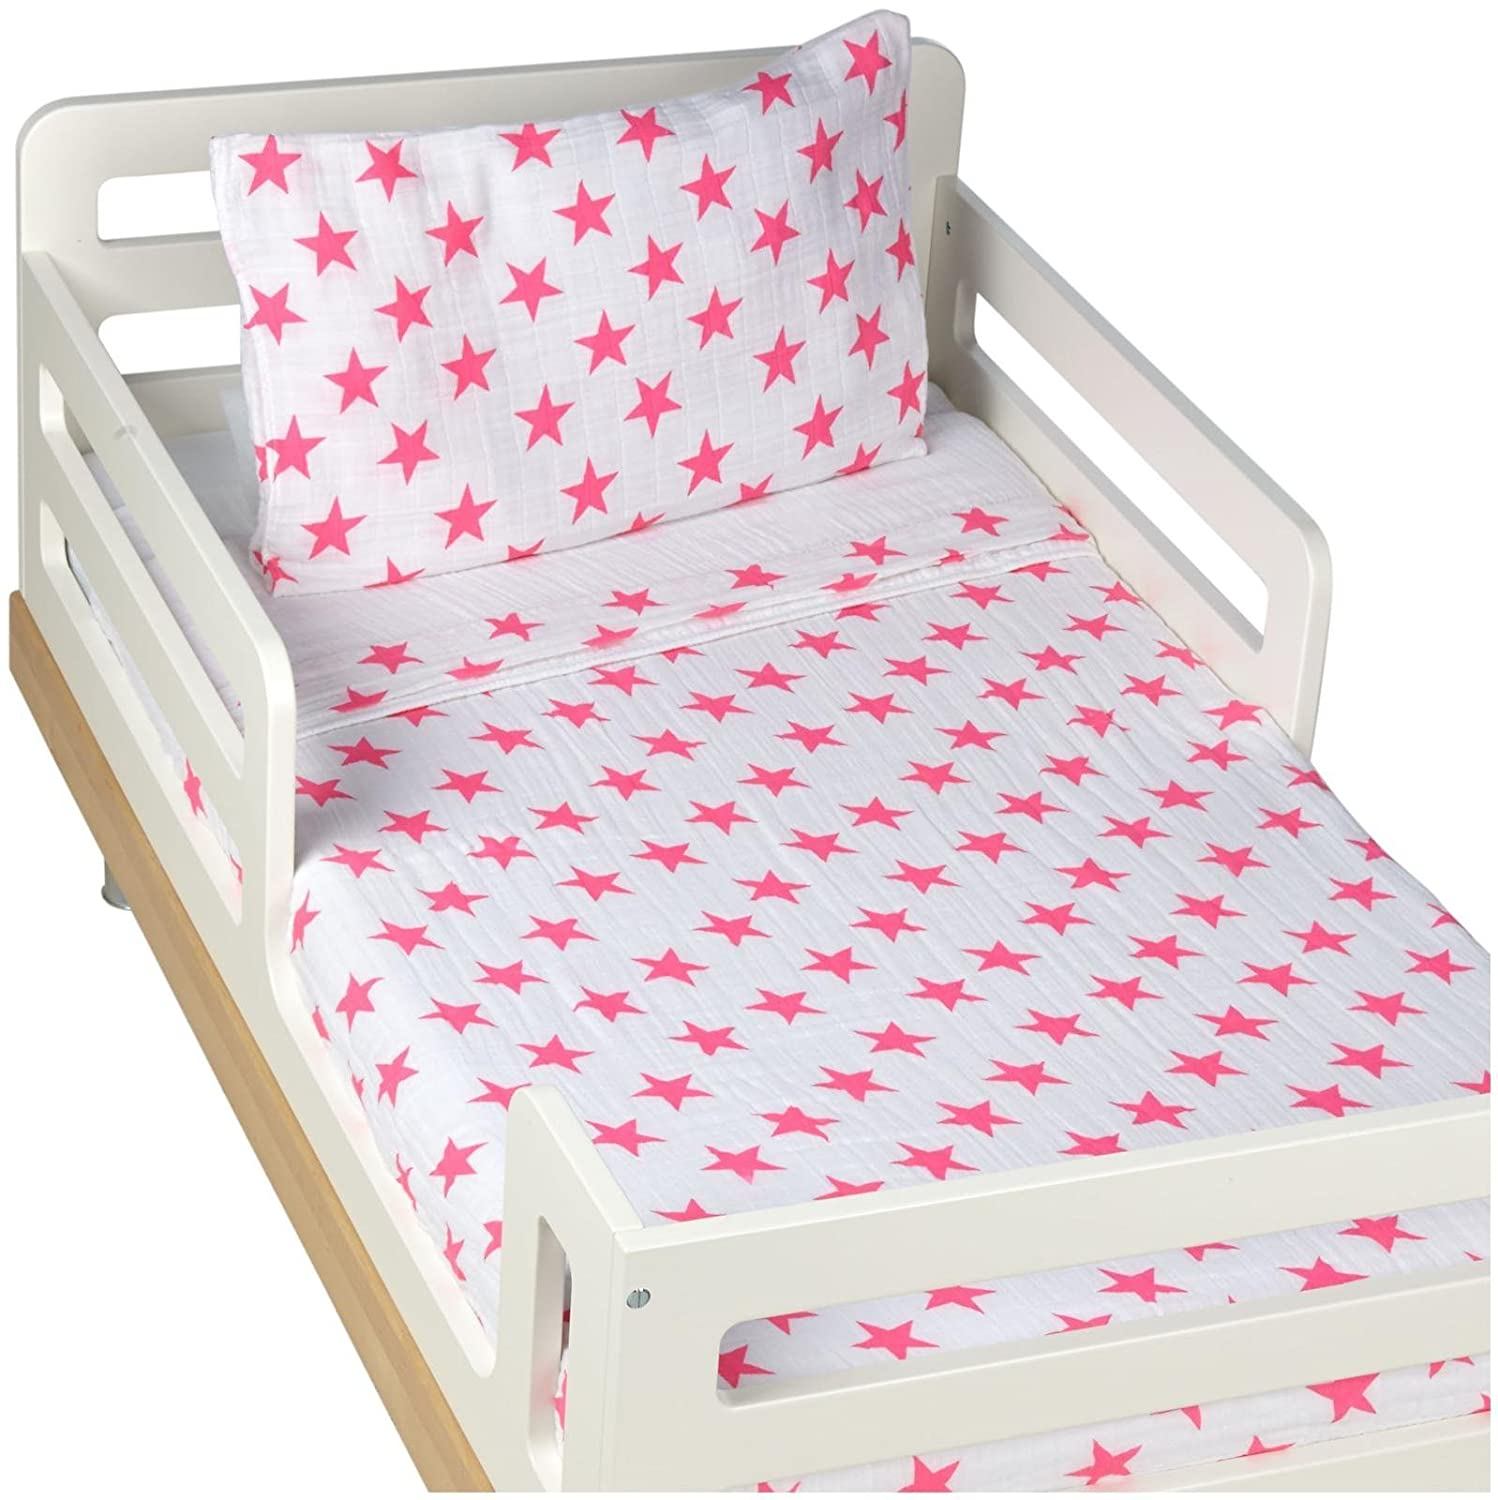 Aden + Anais Classic Toddler Bett bei ein Bag - Fluro Pink Kids Bedding Sets: Toddler Bedding, Toddler Pillow, Cotton Blanket